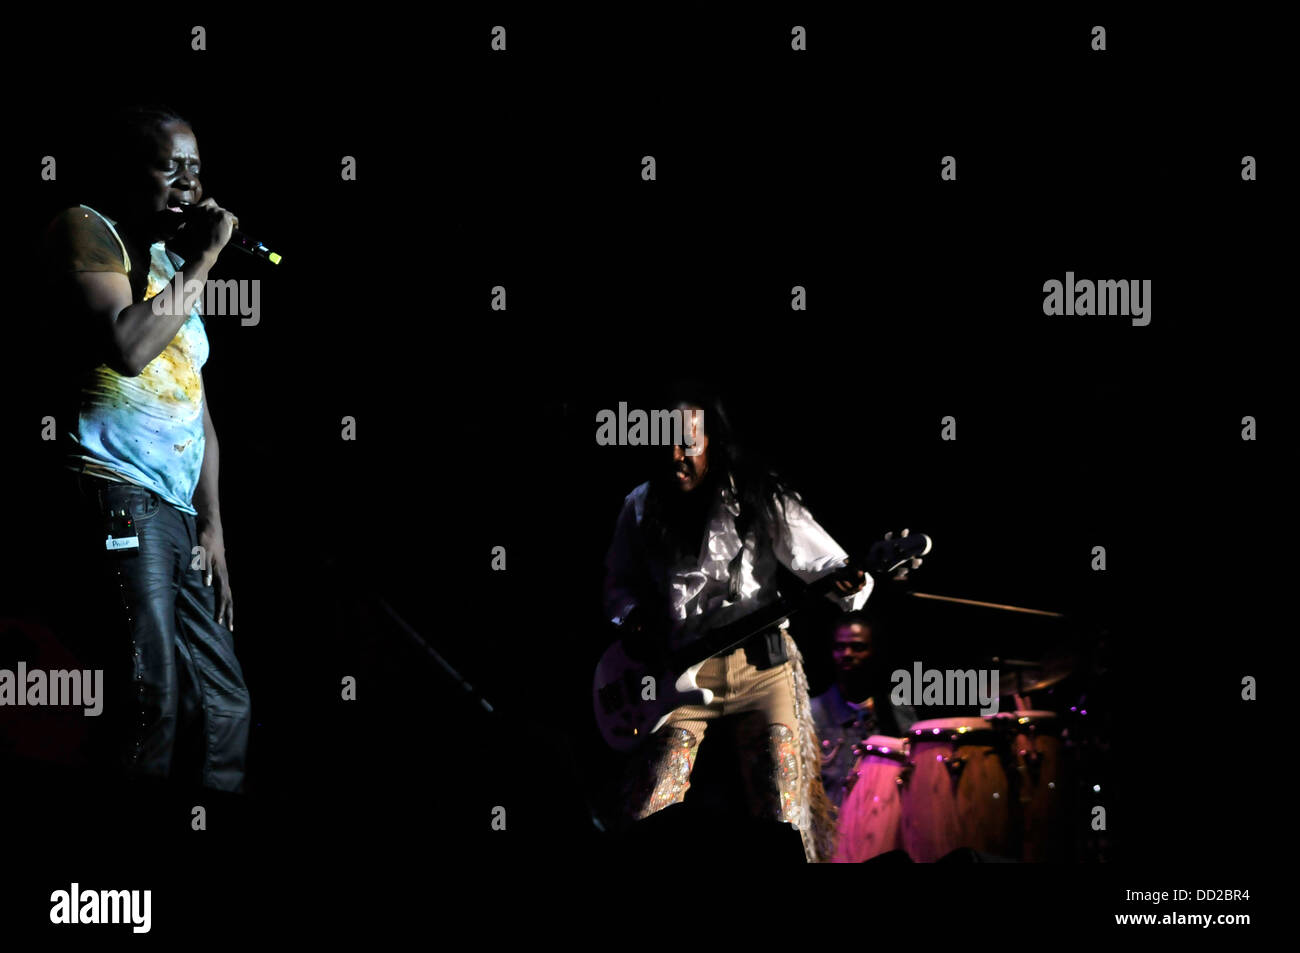 Philip Bailey Earth, Wind & Fire Verdine White American band funk soul jazz rock disco meetick band music 70' - Stock Image